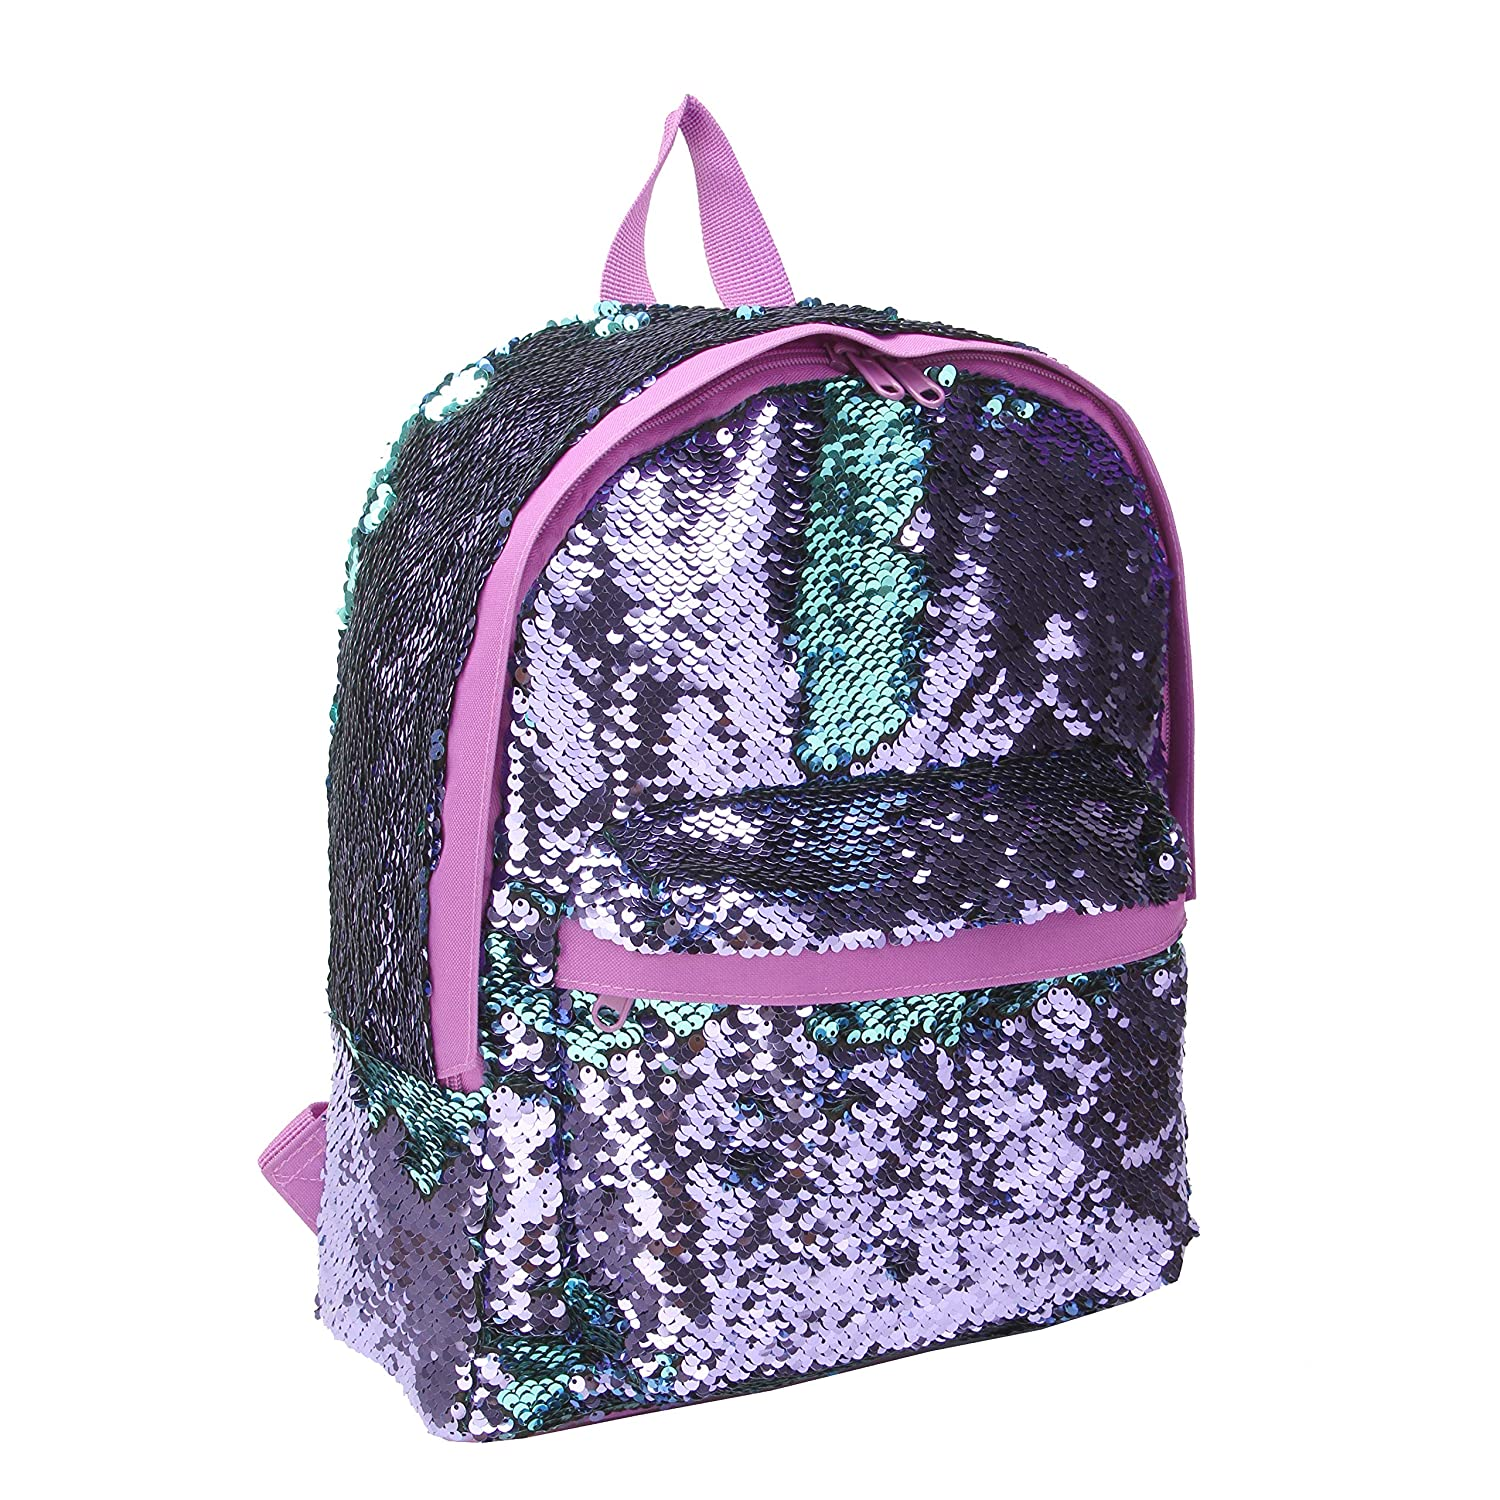 b6260701d6f Cute Mini Backpack for Teen Girls Fashion Magic Mermaid Sparkly Sequin  Small Daypacks Purse for Ladies (Purple)